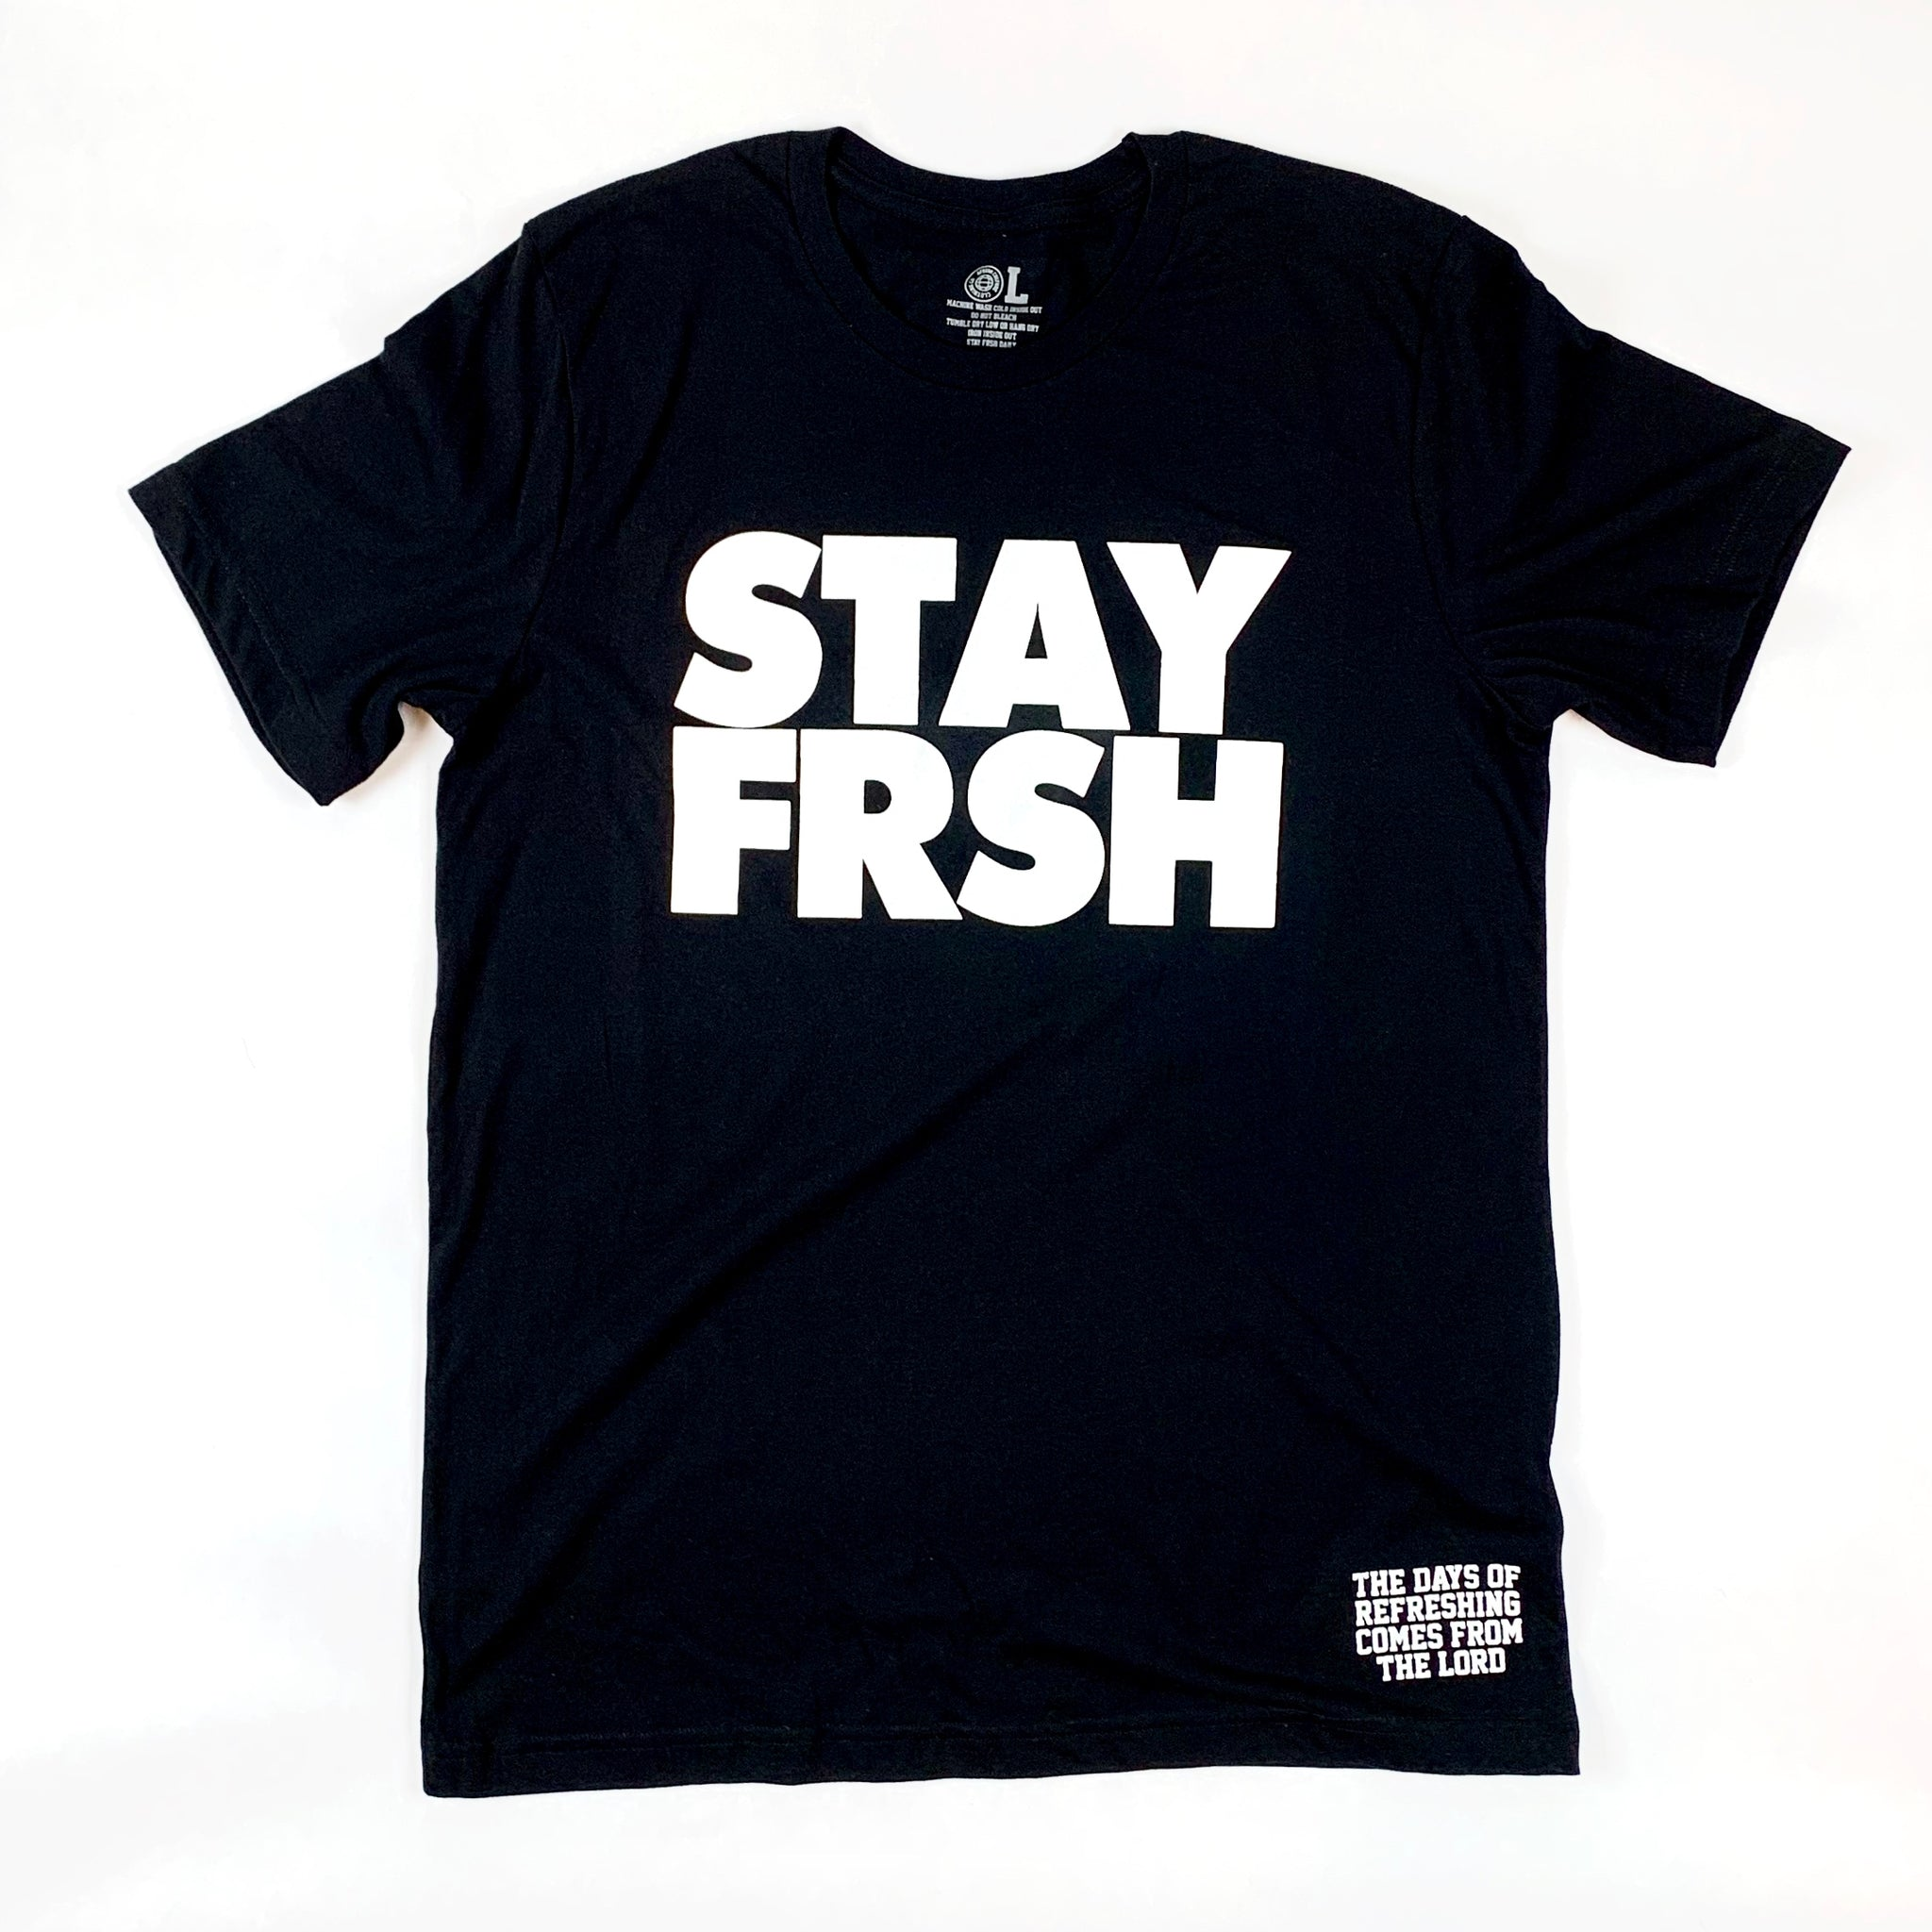 STAY FRSH Original Tee - Black